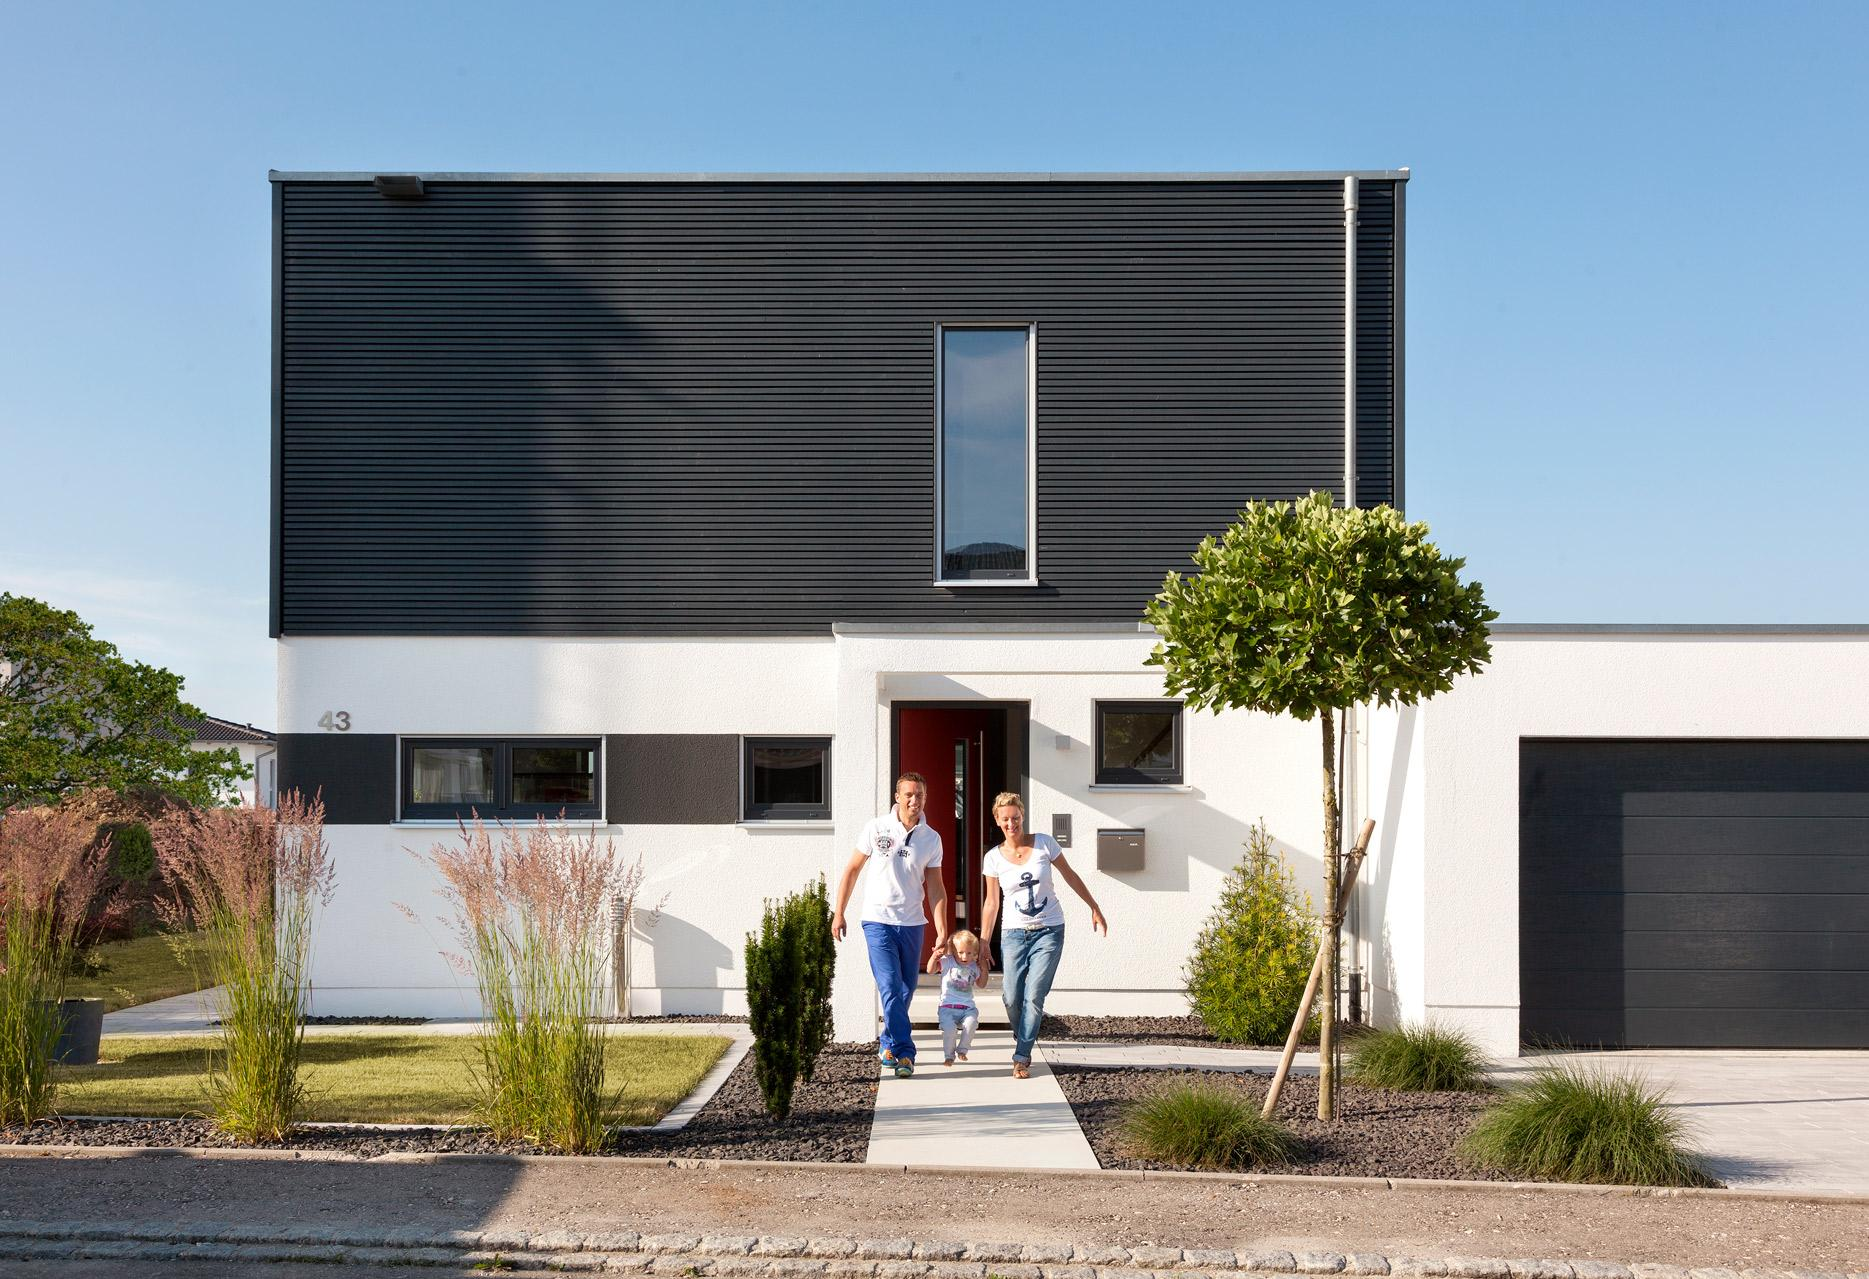 Detached house with Bauhaus style architecture